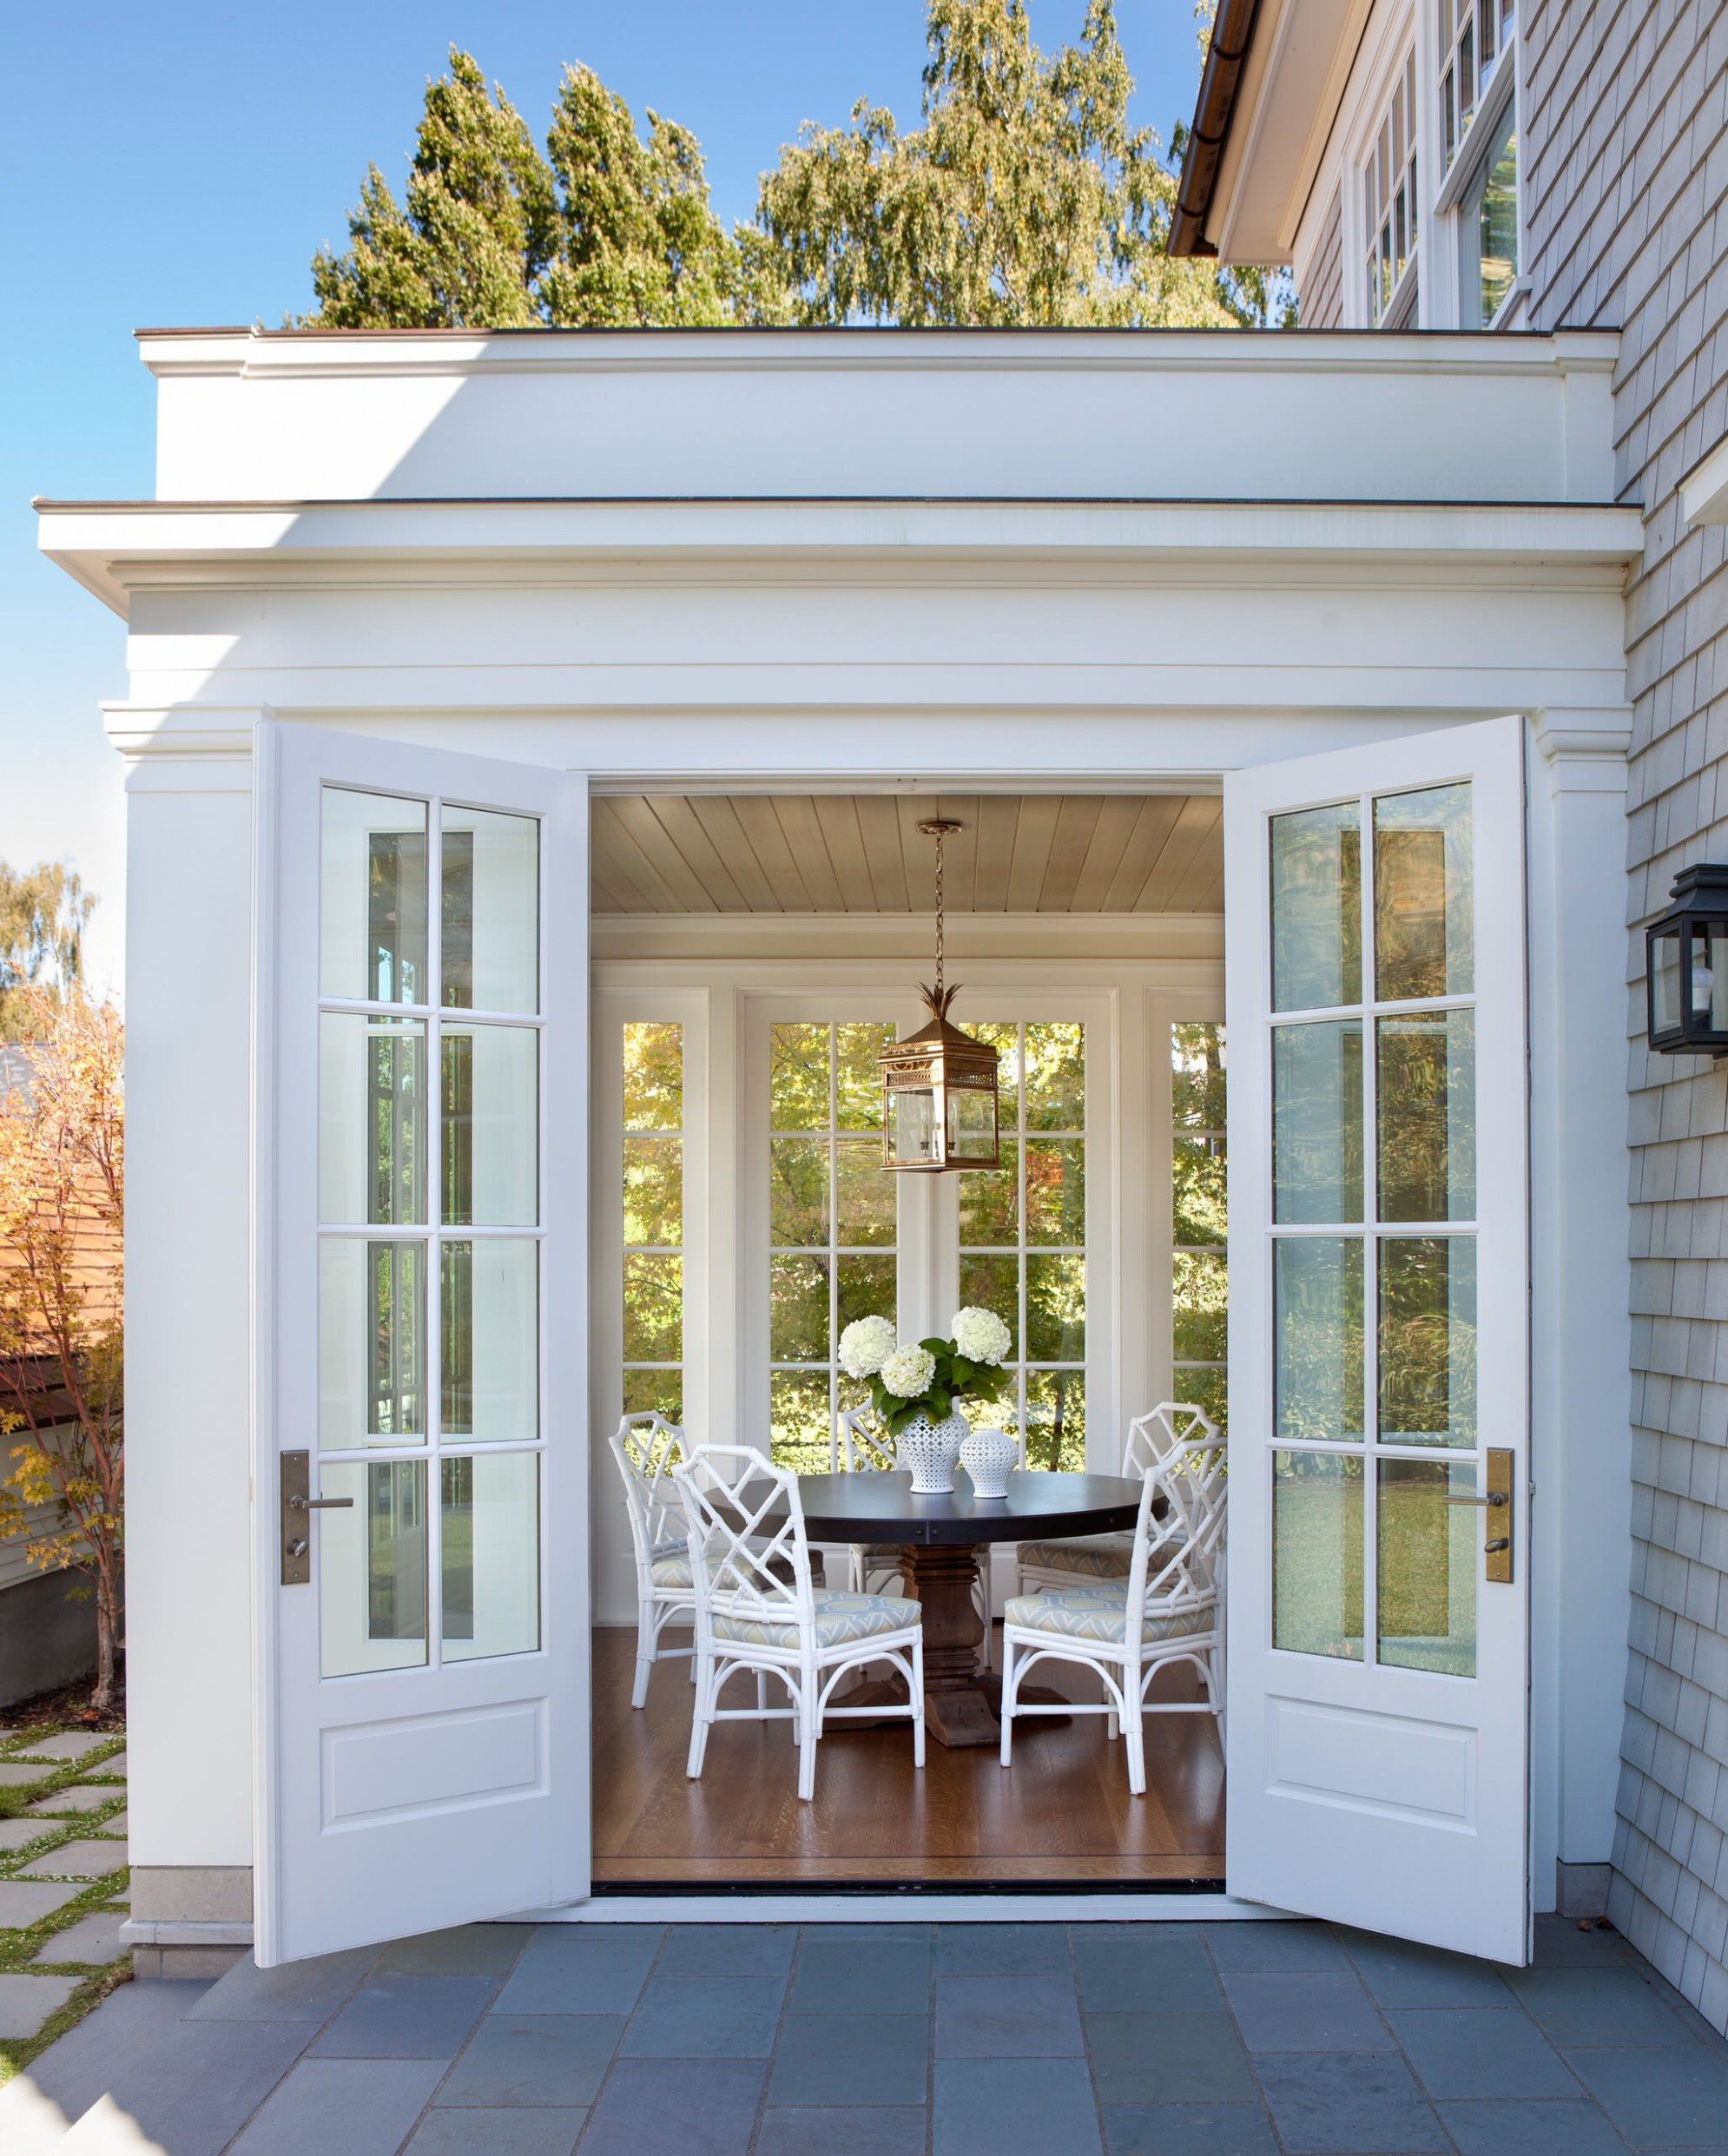 11 Beautiful Small Sunroom Pictures & Ideas  Houzz - Small Sunroom Off Bedroom